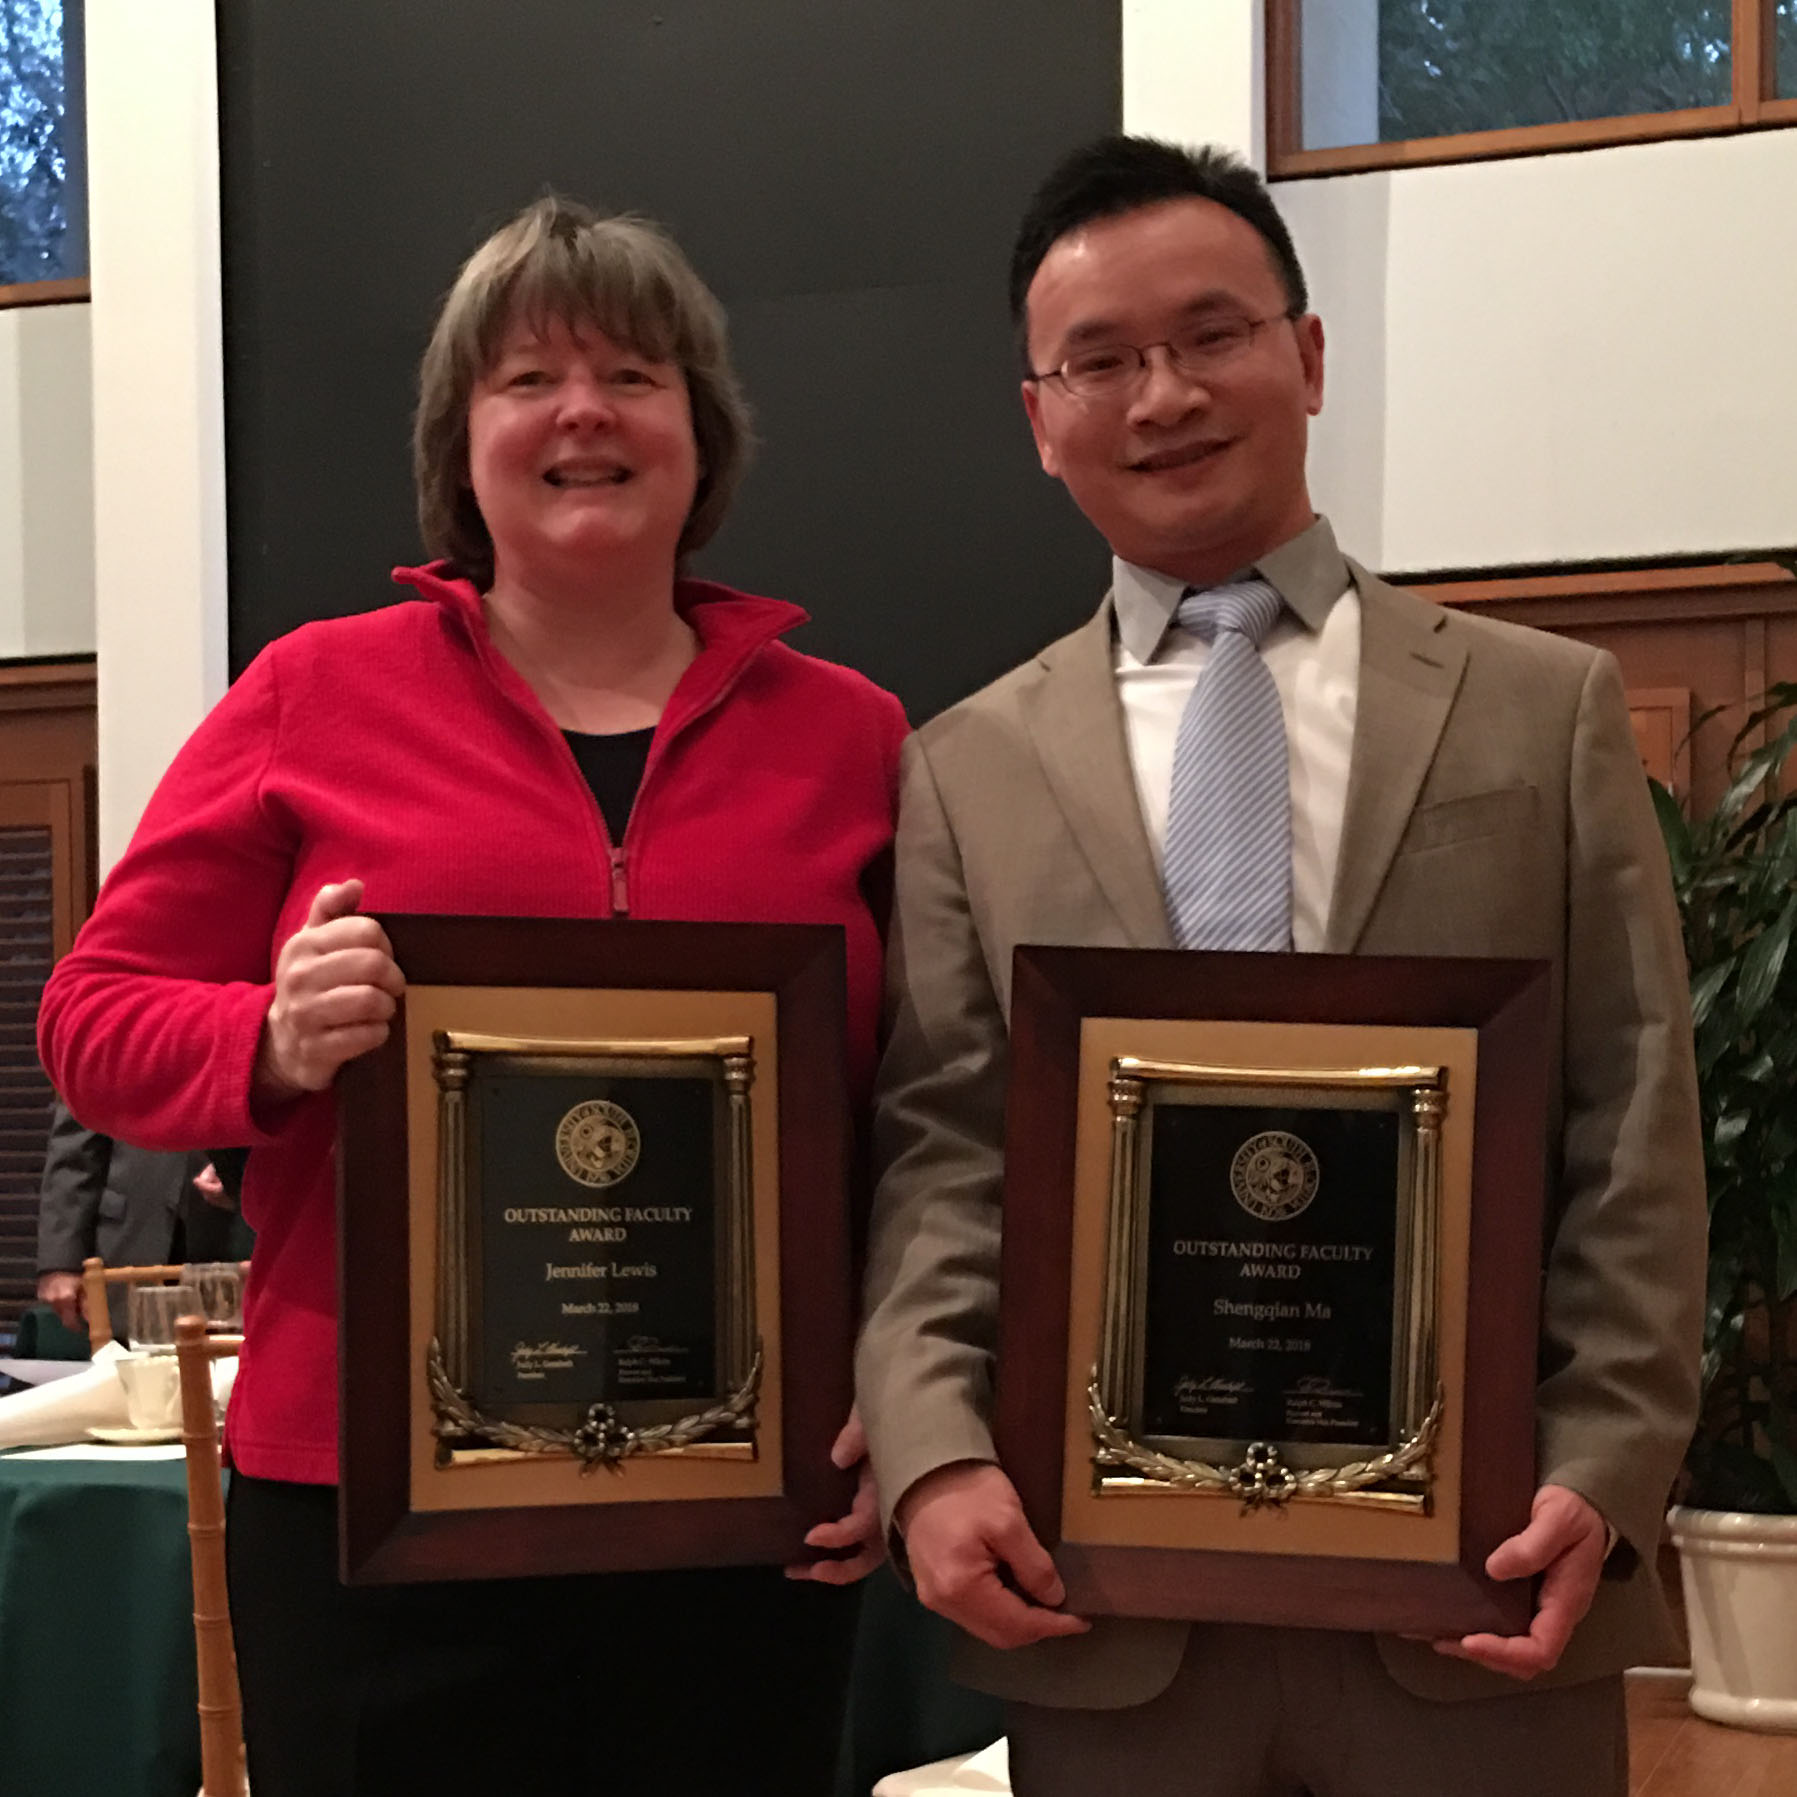 Outstanding Faculty Awardees, Dr. Jennifer Lewis and Dr. Shengqian Ma